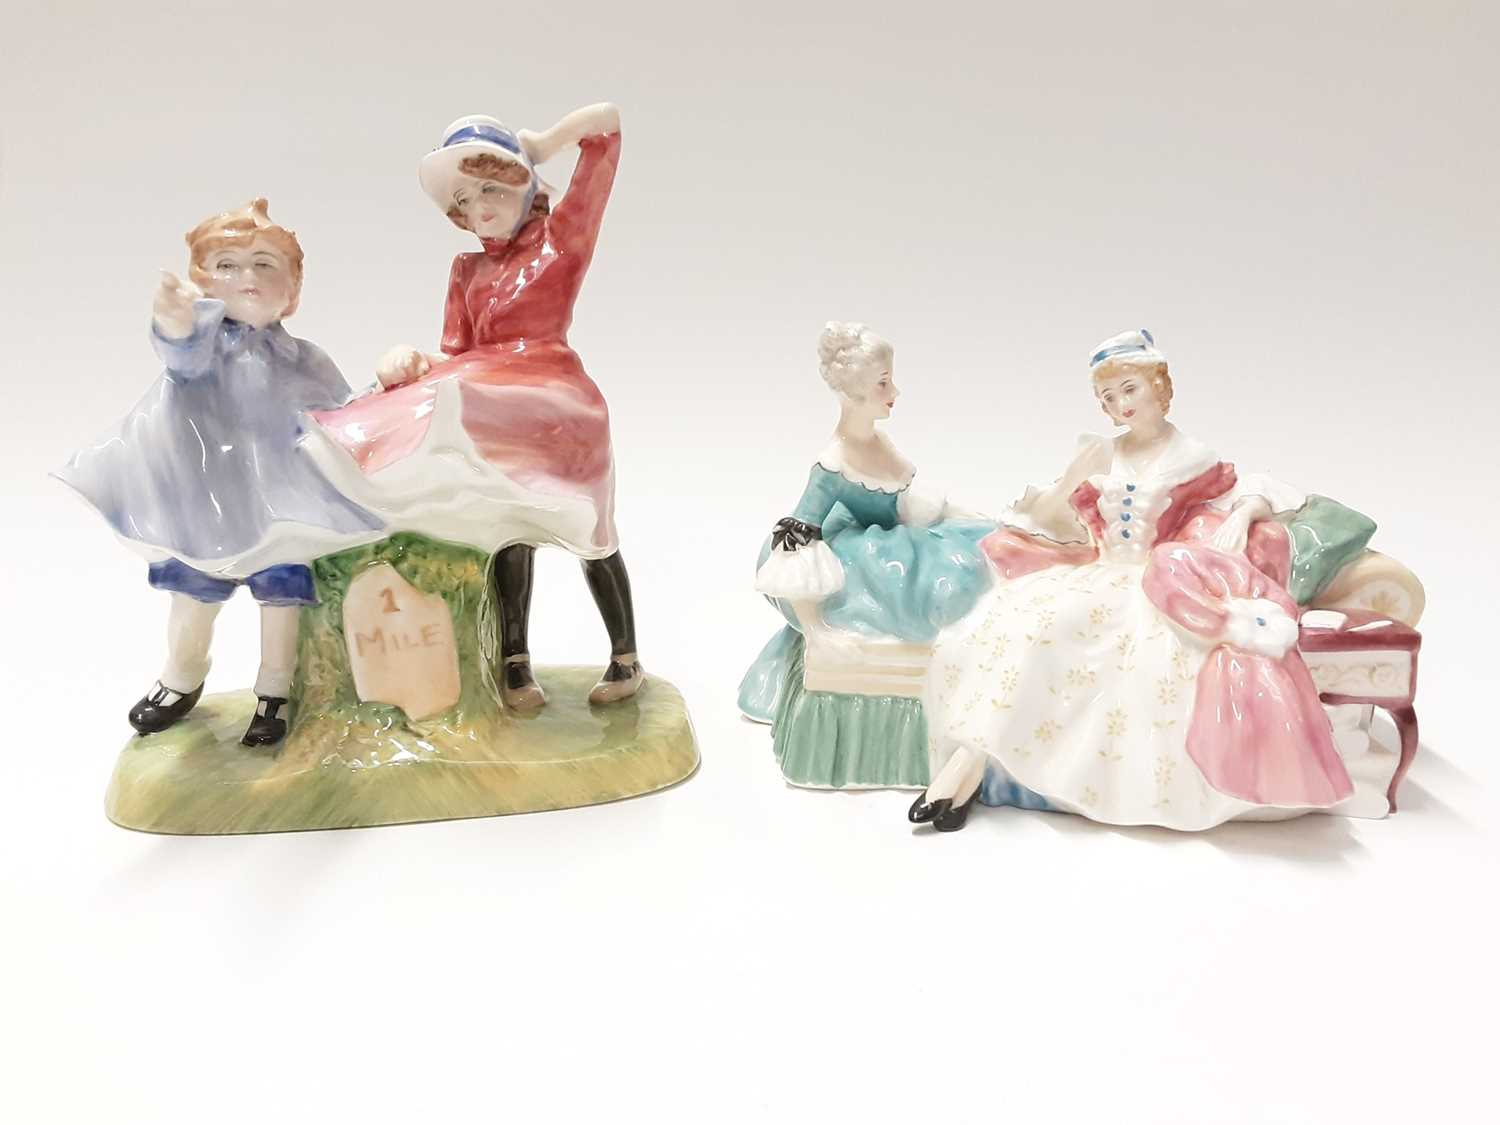 Lot 73 - Two Royal Doulton figure groups - The Love Letter HN2149 and Milestone HN3297